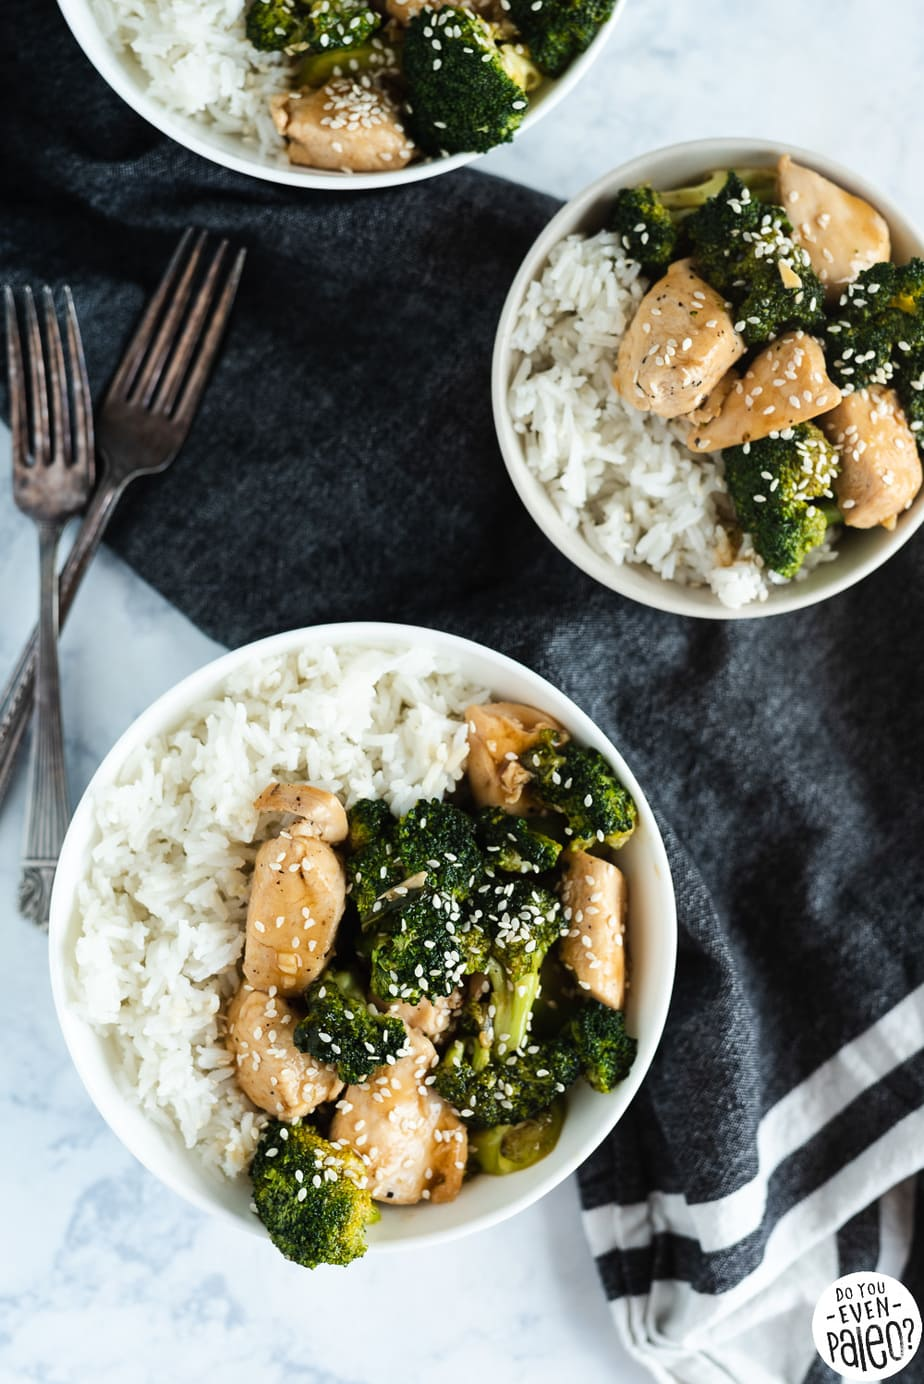 Three bowls of Quick & Easy Chicken & Broccoli Stir Fry Recipe ingredients with a dark napkin on a marble background by DoYouEvenPaleo.net